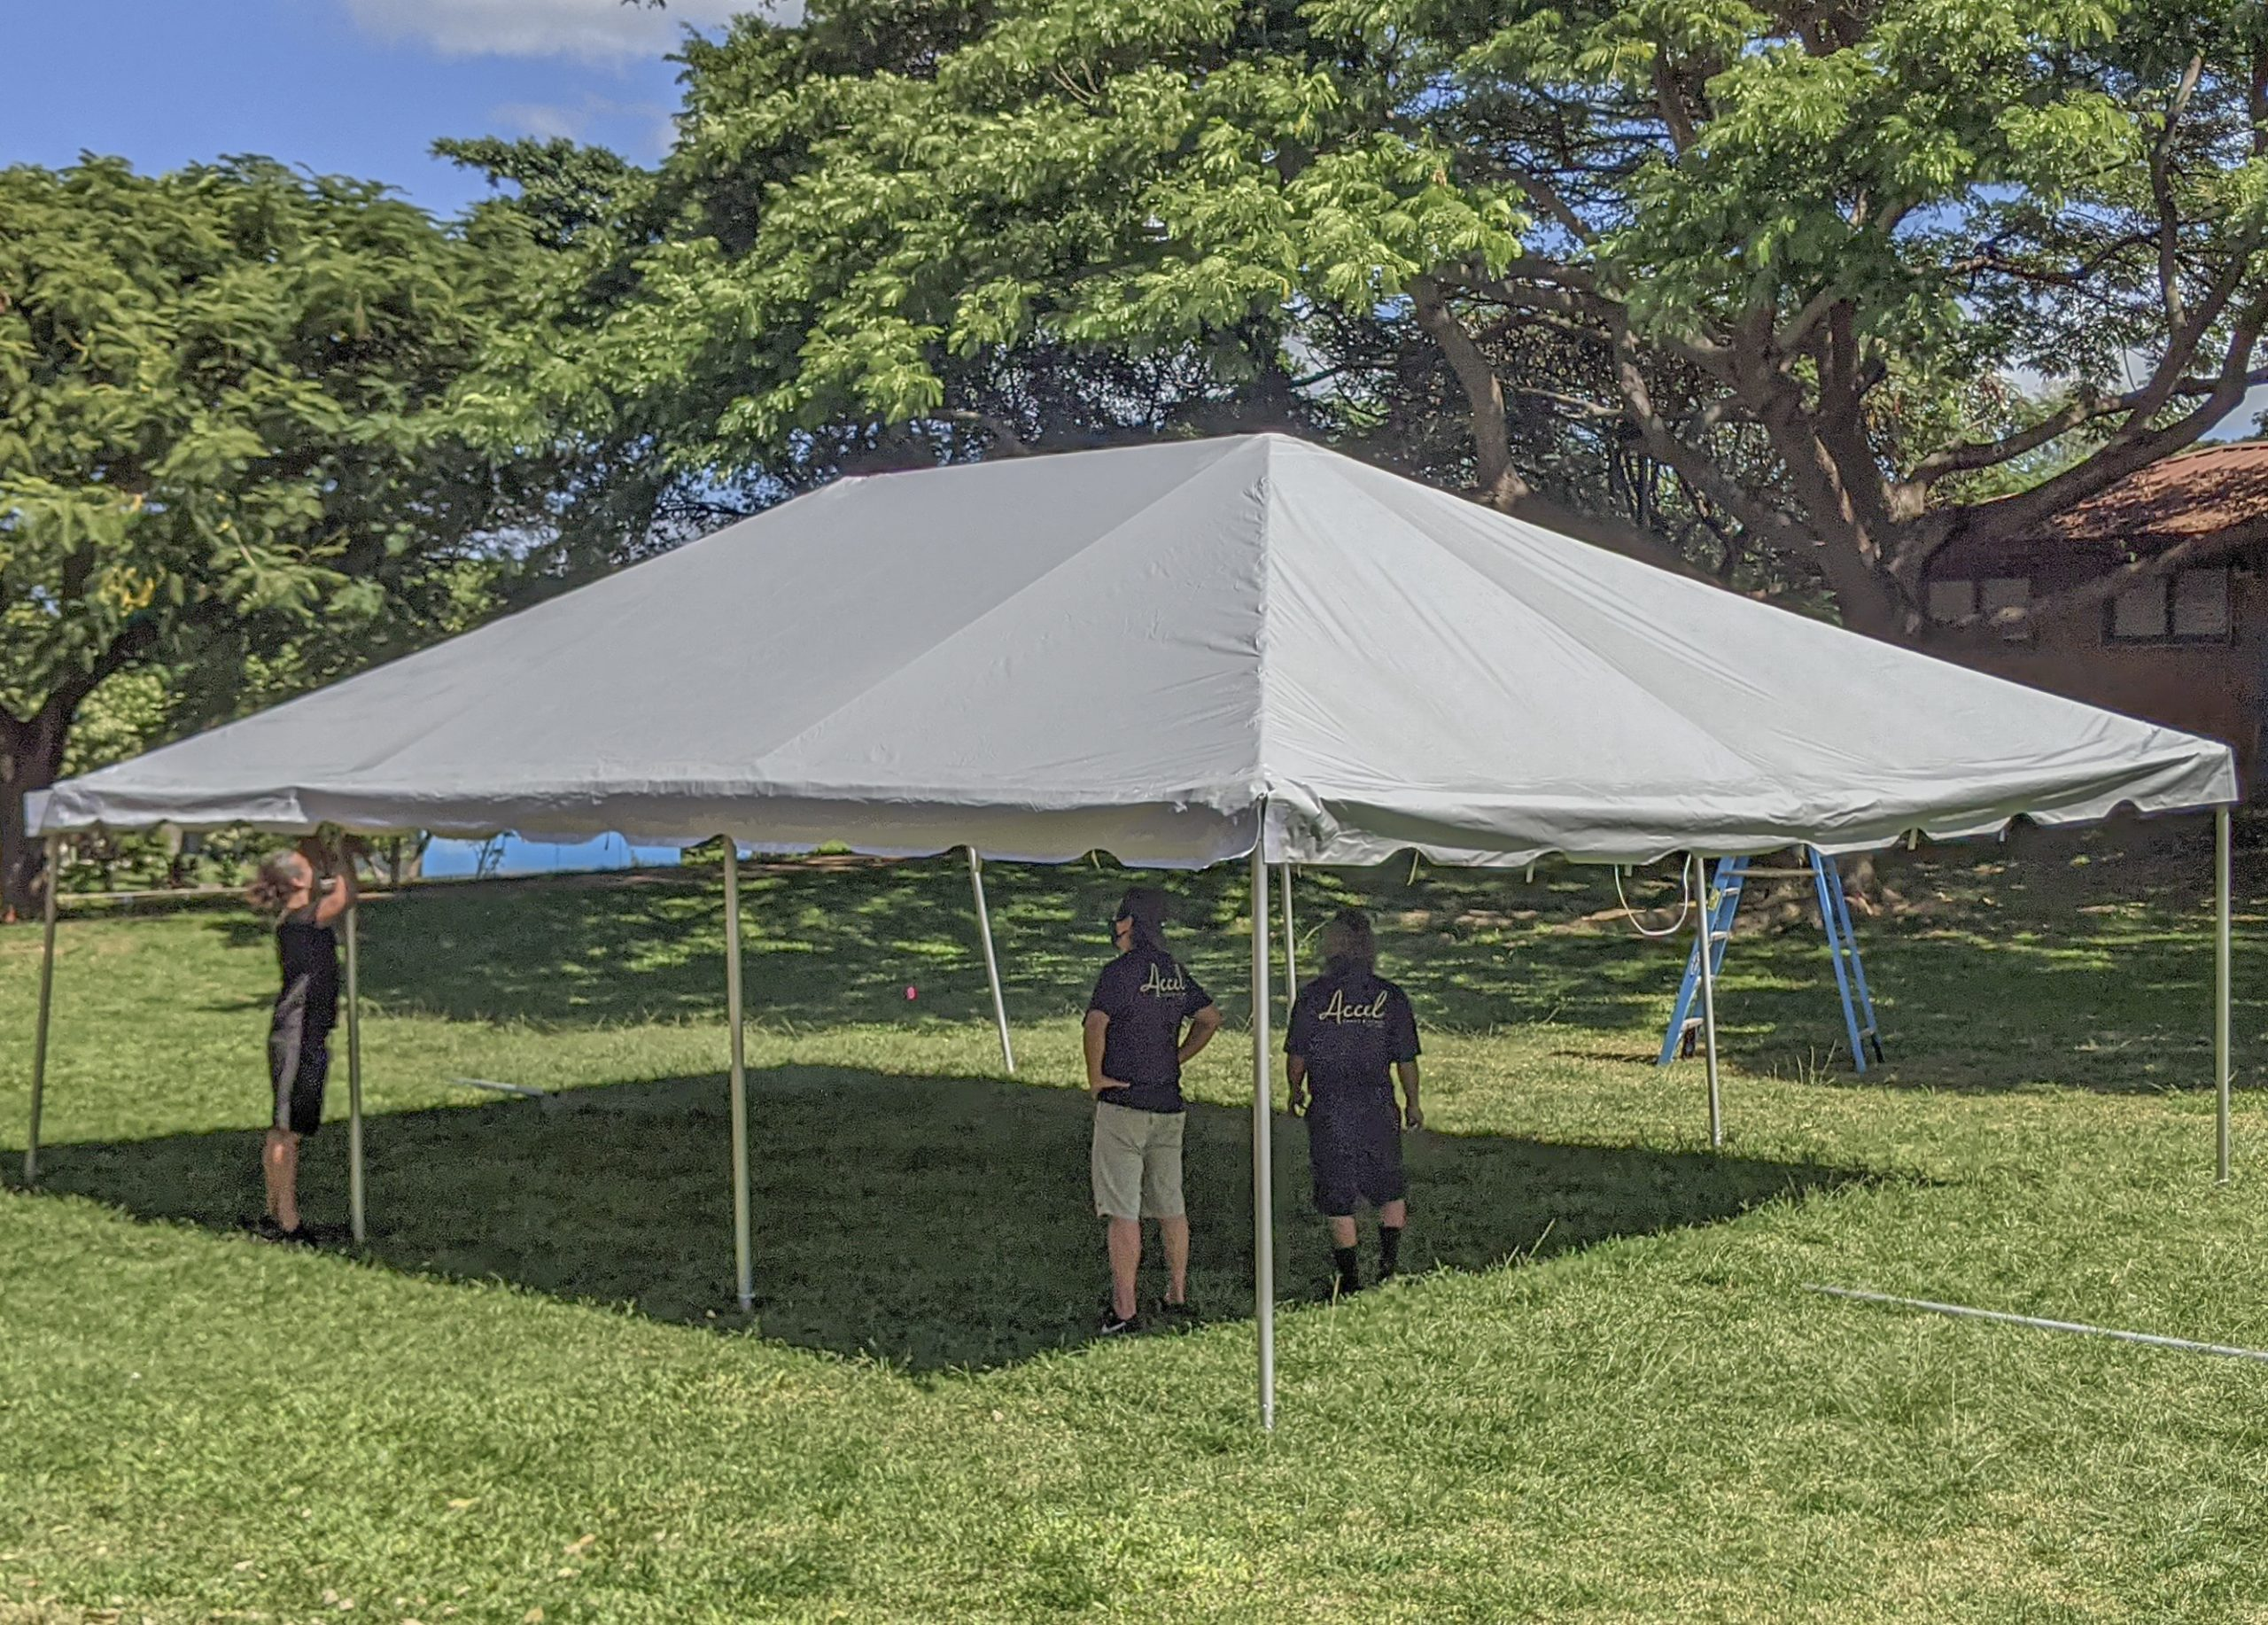 Temptation Island Production Company Donates Brand New Tents to Kīhei Schools for Outside Classes